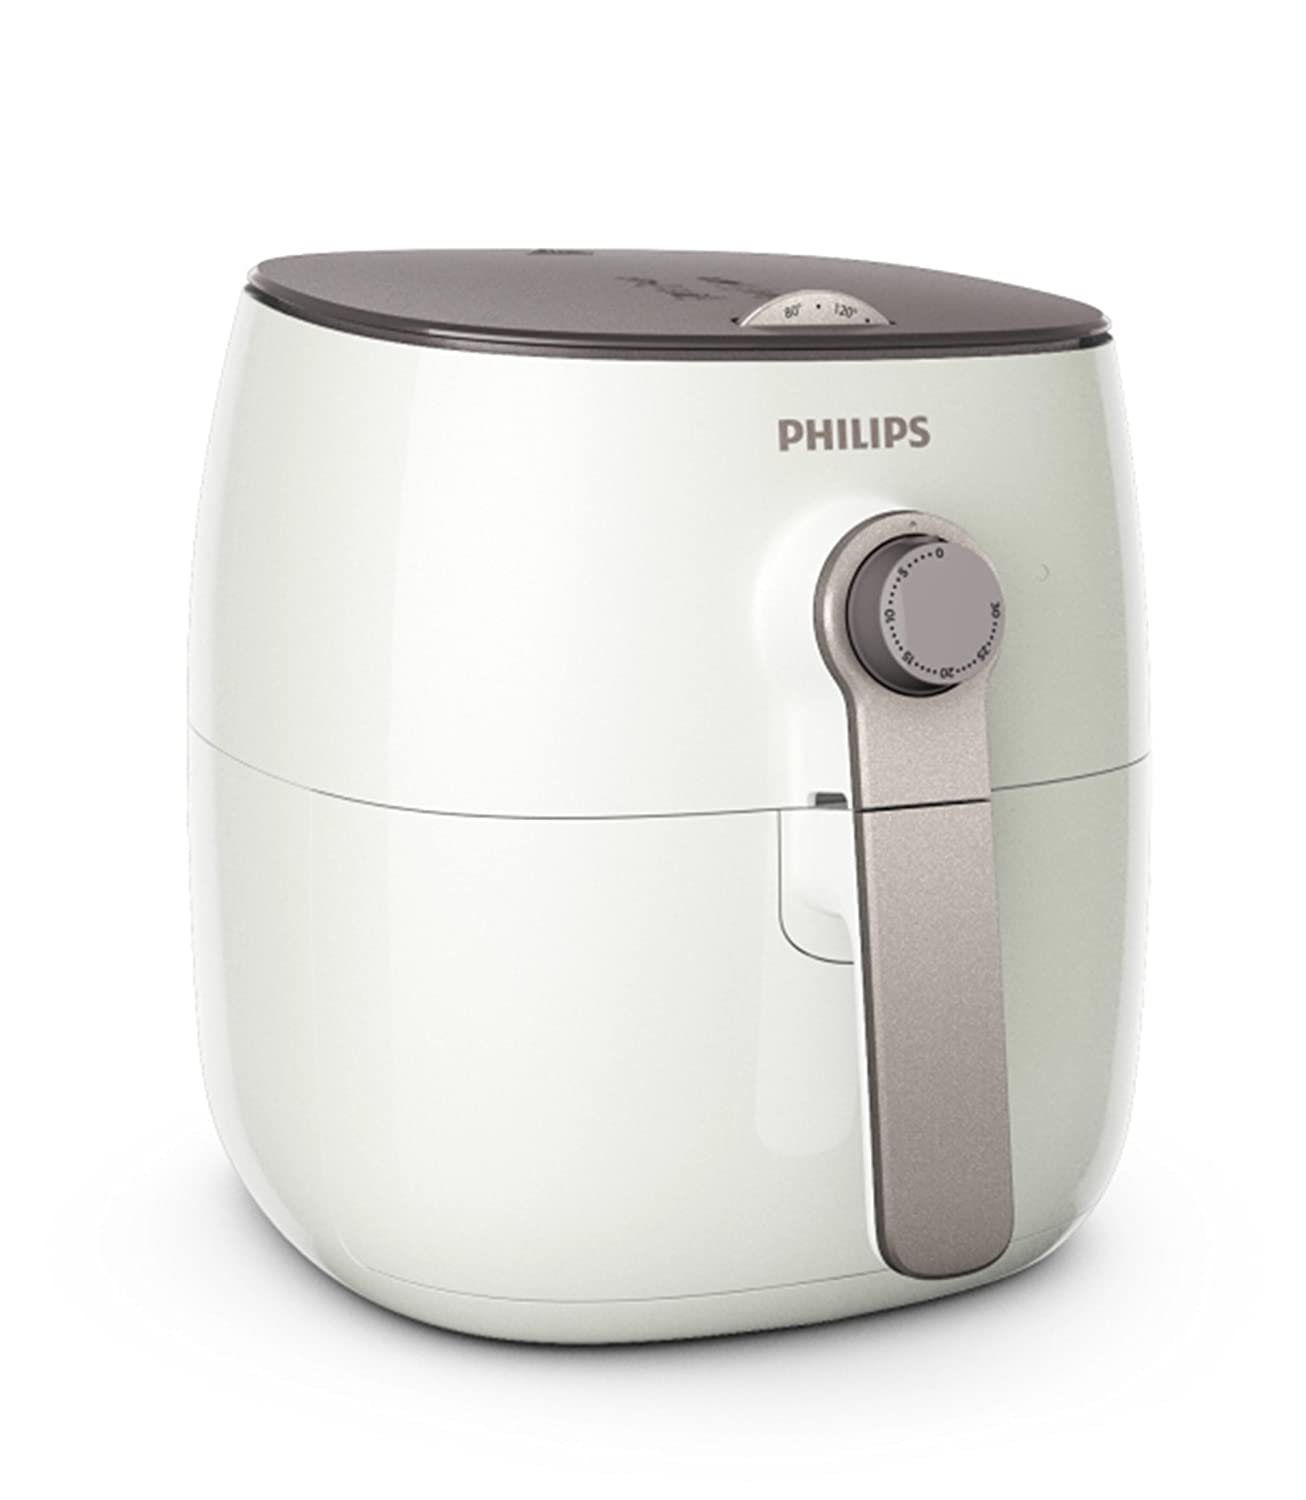 Philips Avance Collection XXL Digital Twin TurboStar Airfryer Black/Silver - HD9650/96